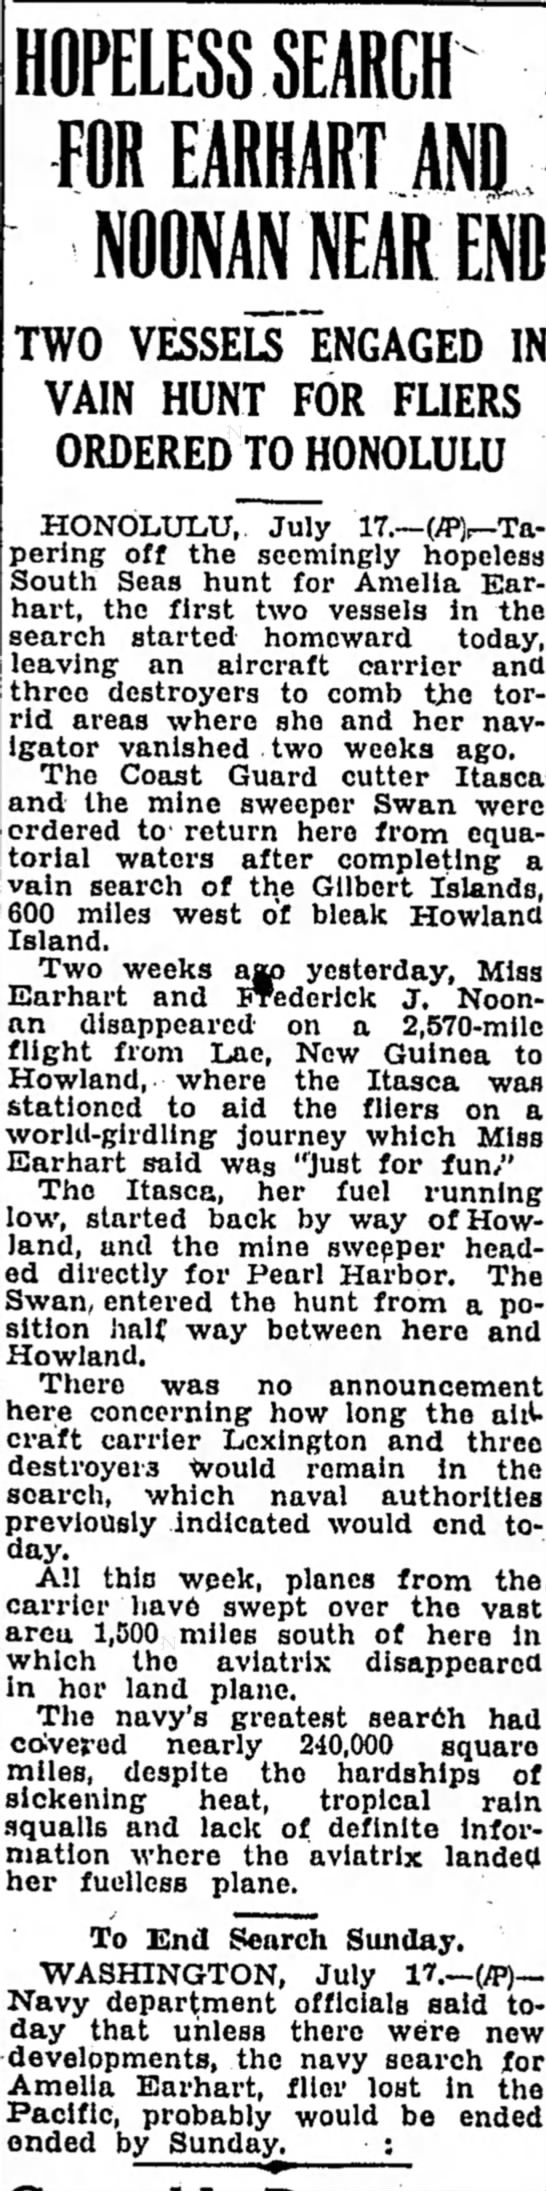 Hopeless search for earhart and noonan near end - HOPELESS SEARCH FOR EARHART M) NOONAN NEAR El...